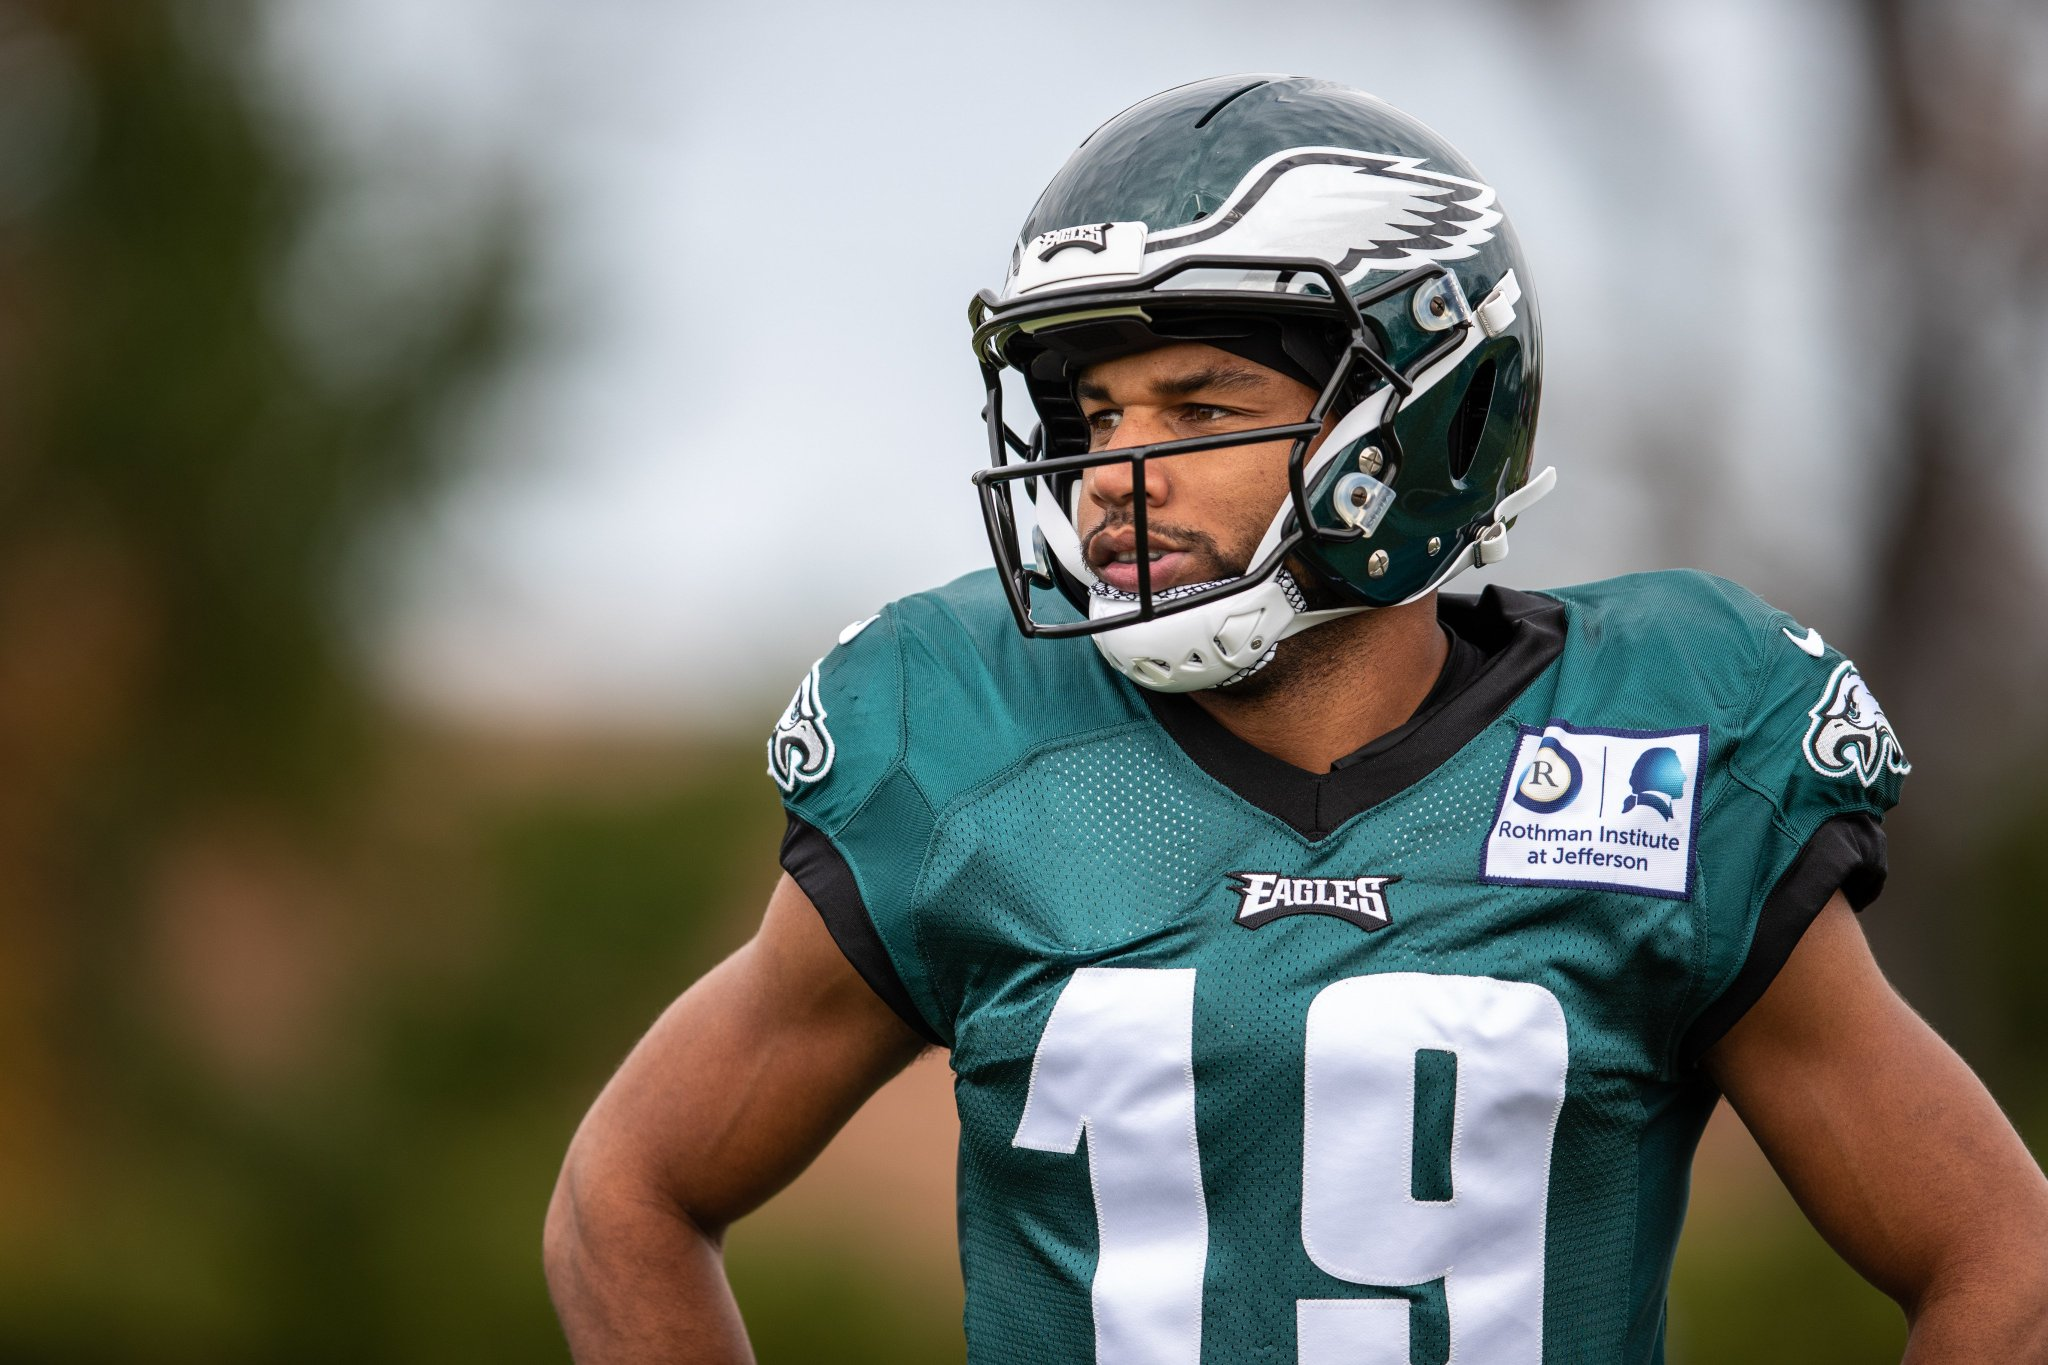 .@ShowtimeTate looking fly.  #FlyEaglesFly https://t.co/DBFP5h9sI1